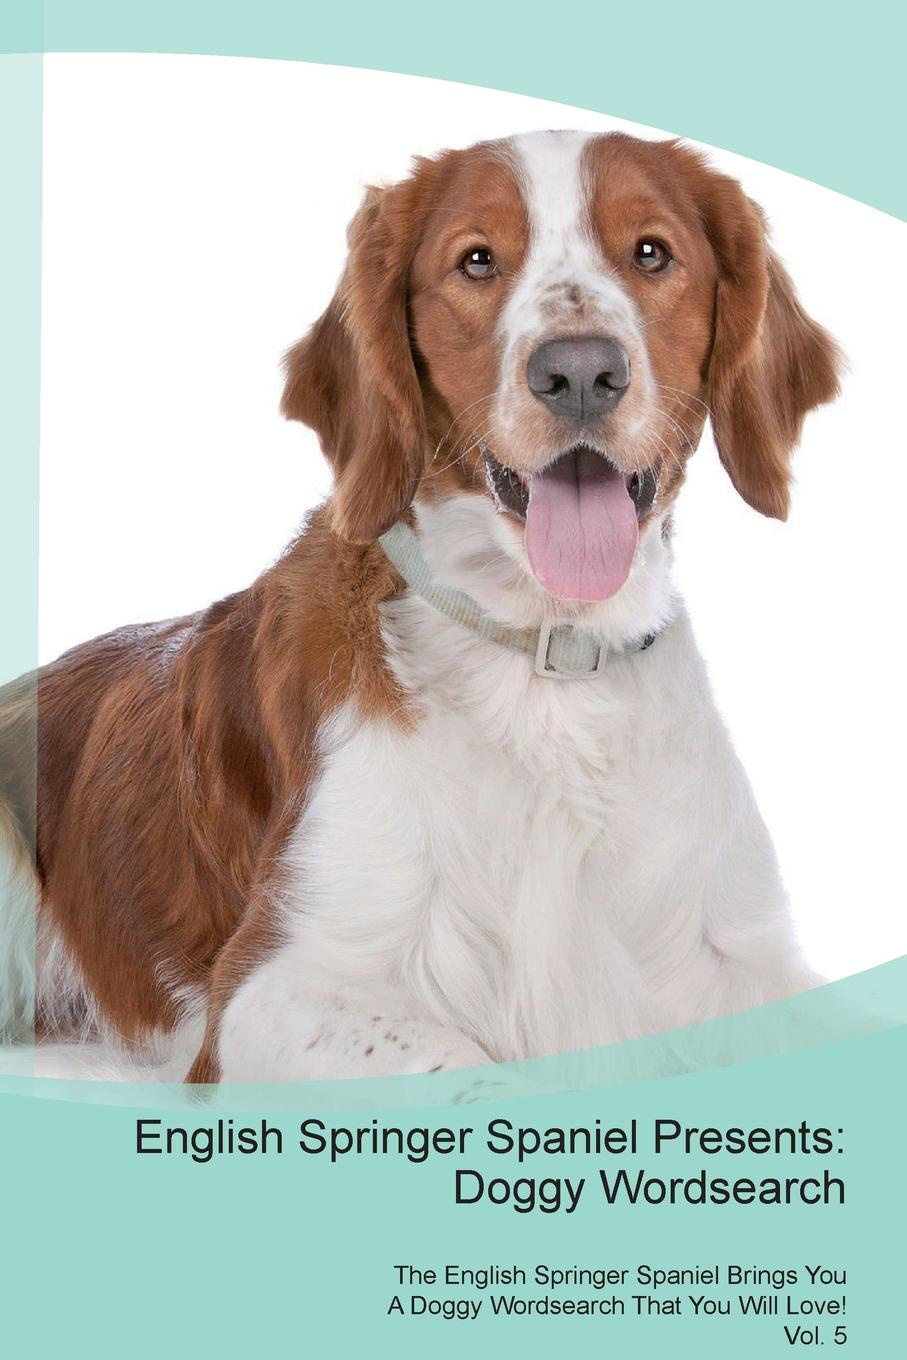 Doggy Puzzles English Springer Spaniel Presents. Wordsearch The Brings You A That Will Love! Vol. 5